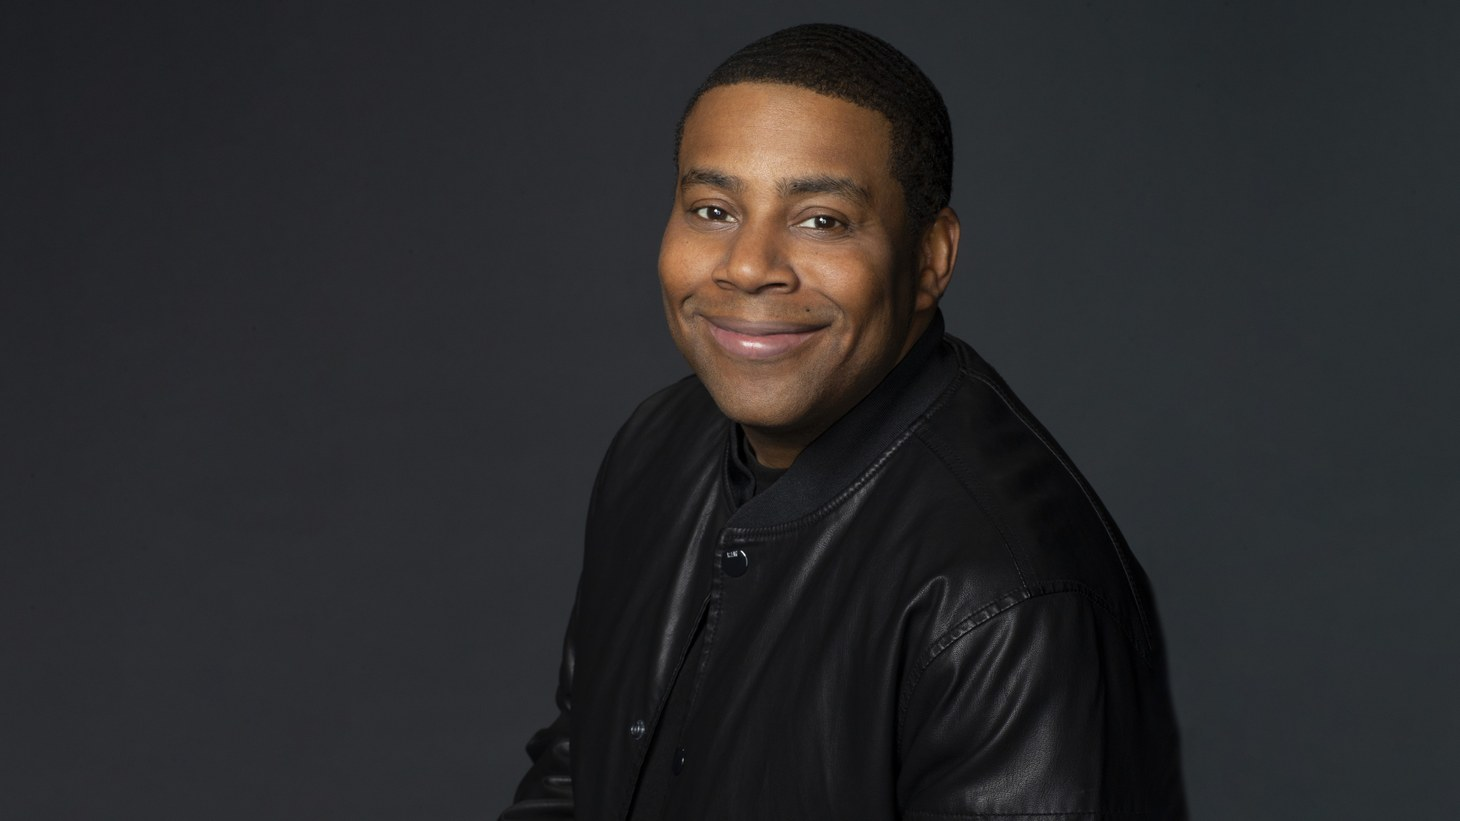 Actor and comedian, Kenan Thompson.